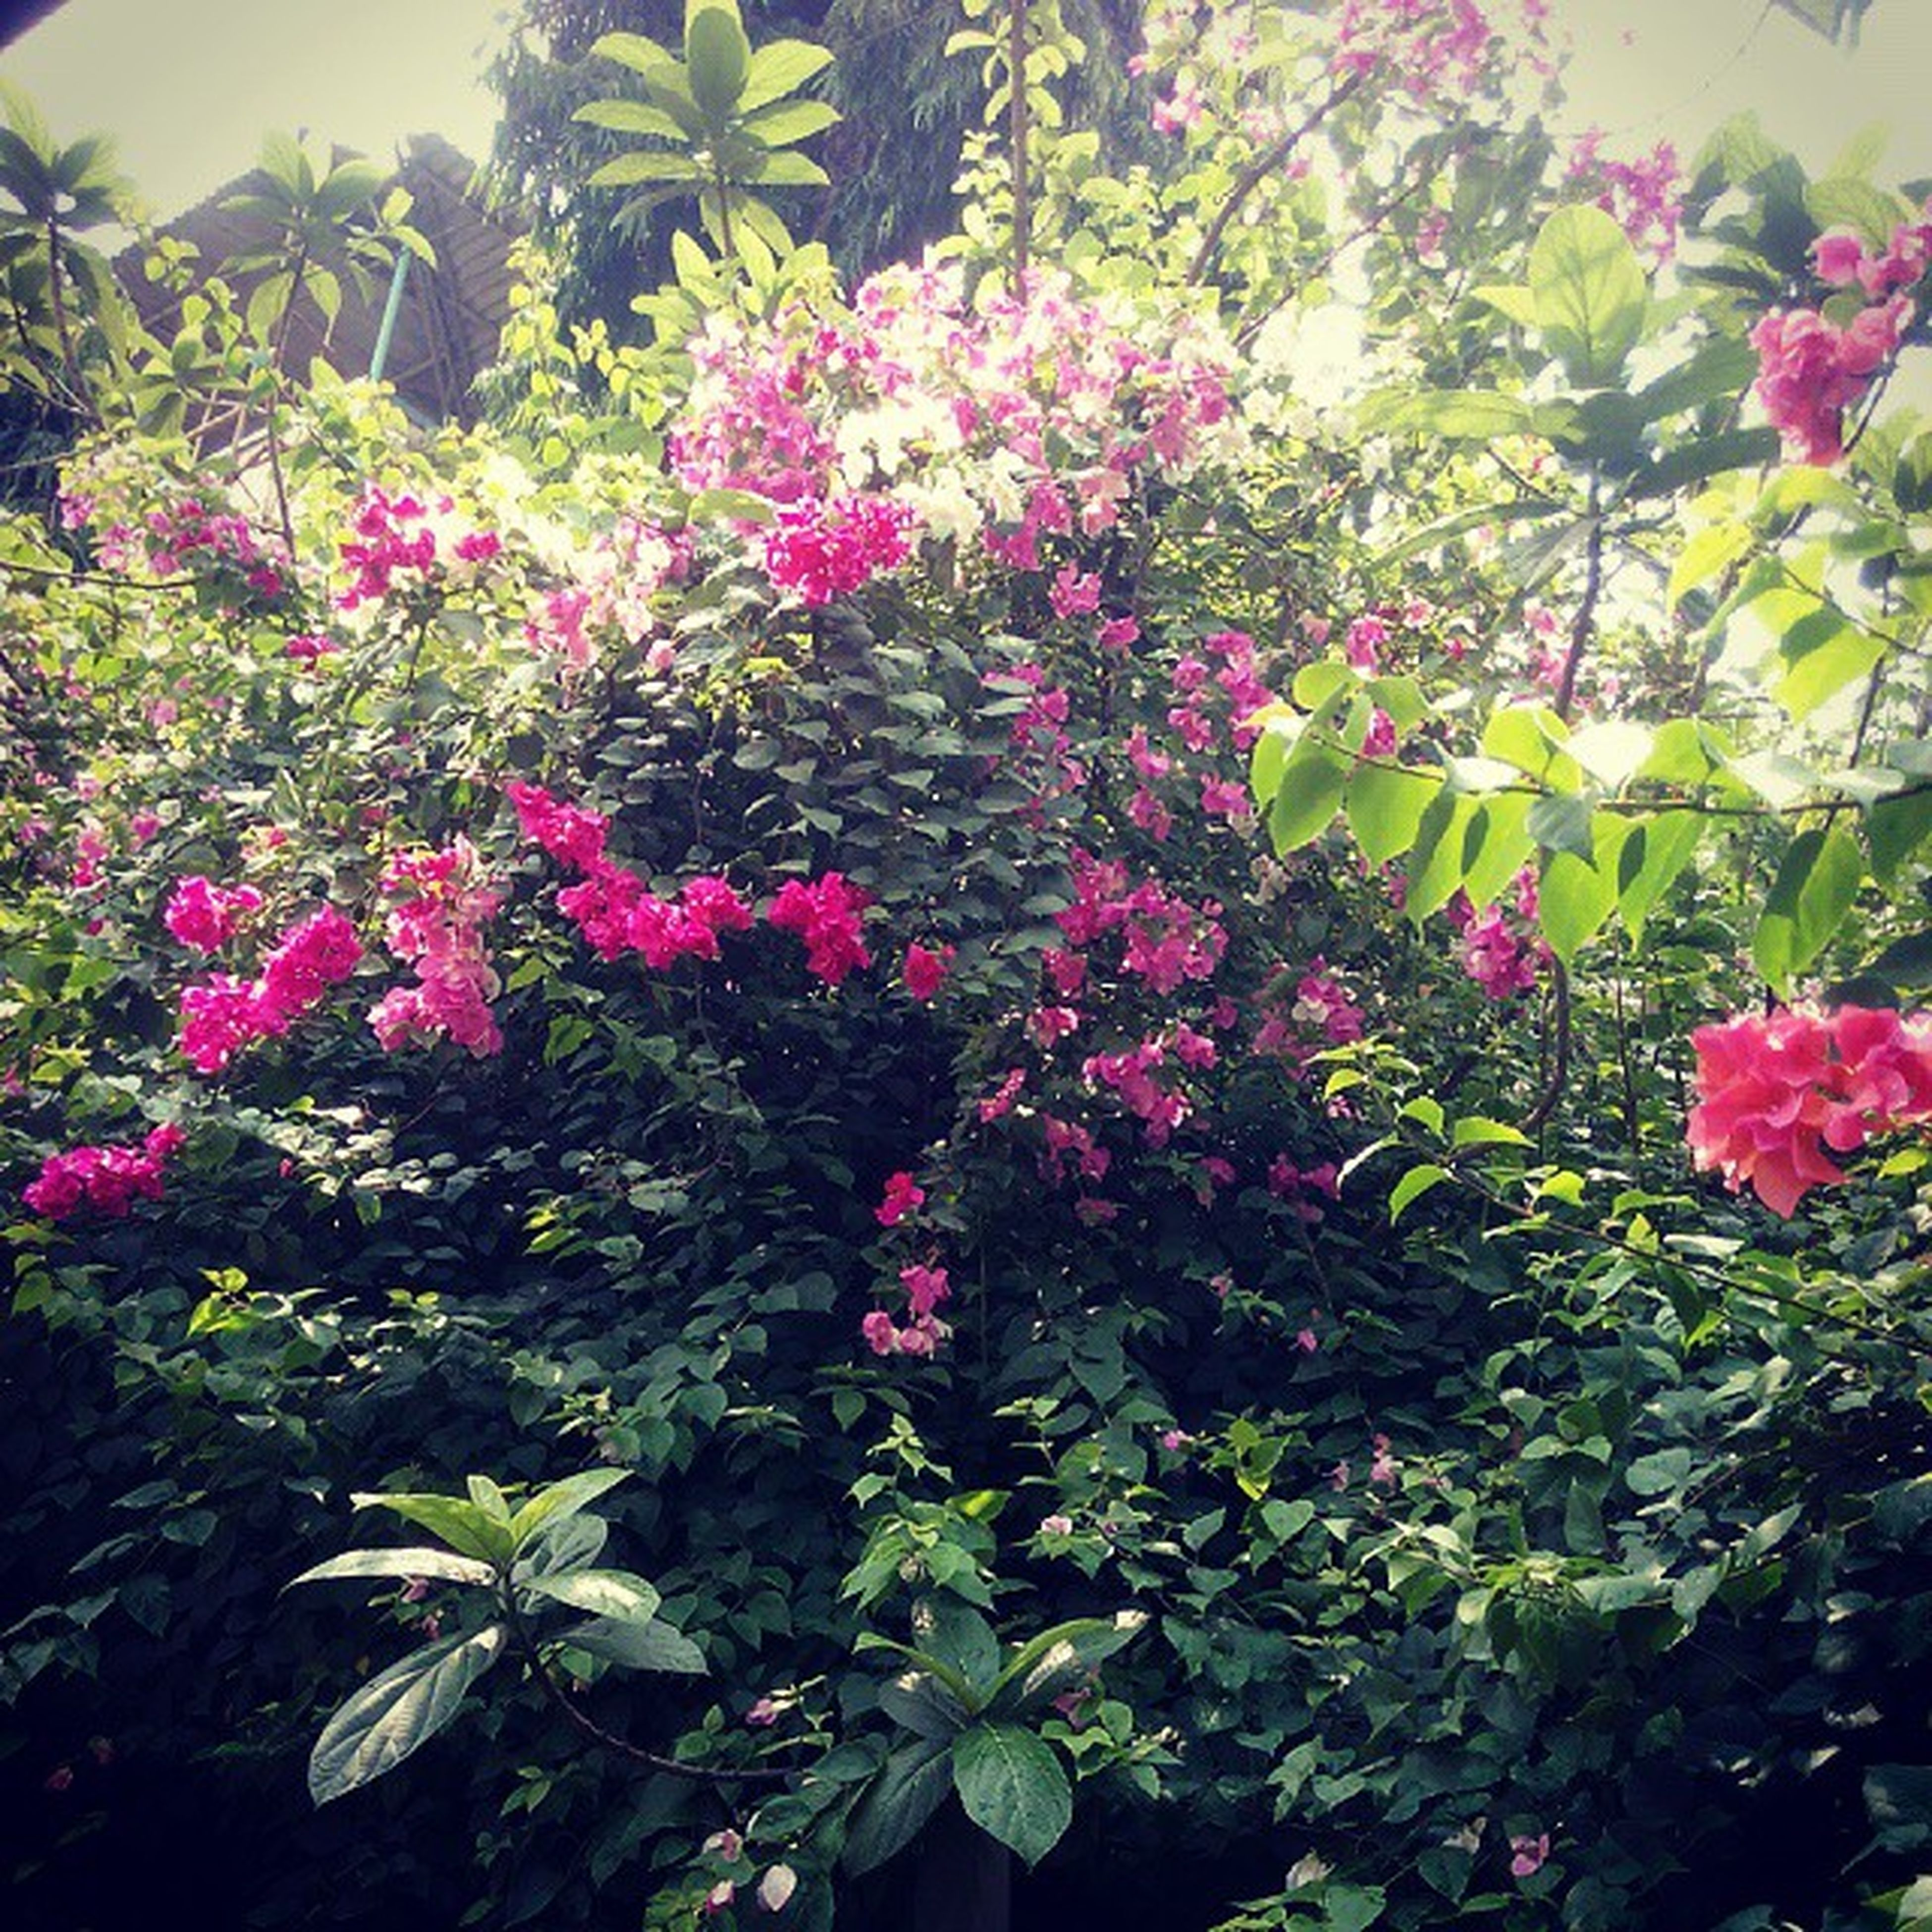 flower, growth, freshness, beauty in nature, pink color, plant, fragility, leaf, nature, petal, blooming, in bloom, green color, park - man made space, blossom, tree, outdoors, day, pink, no people